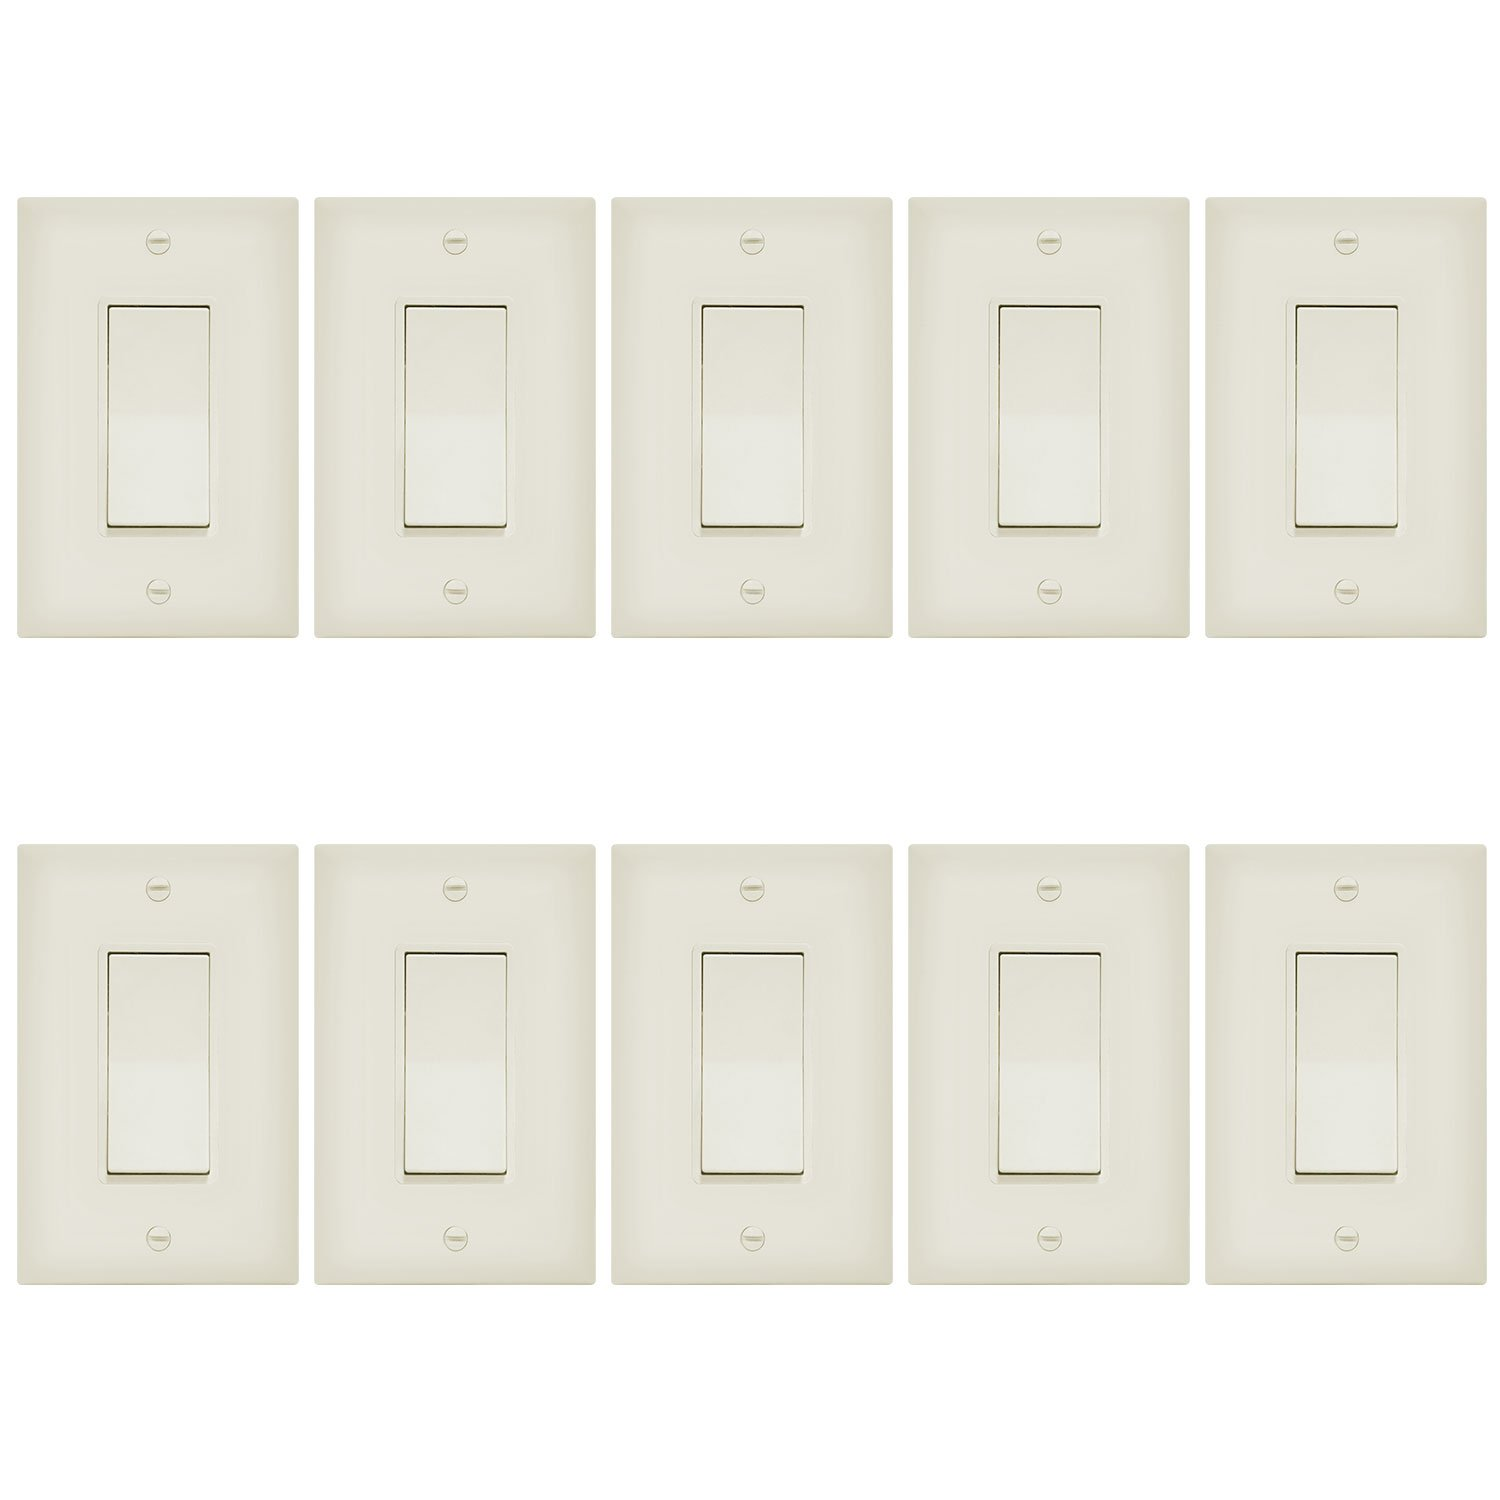 Enerlites 3-Way On/Off Paddle Light Switch with Covers 93150-LA | 15A, 120V/277VAC, Rocker, Single Pole, 3 Wire, Grounding Screw, Residential/Commercial Wall Switch, UL Listed | Light Almond - 10 Pack